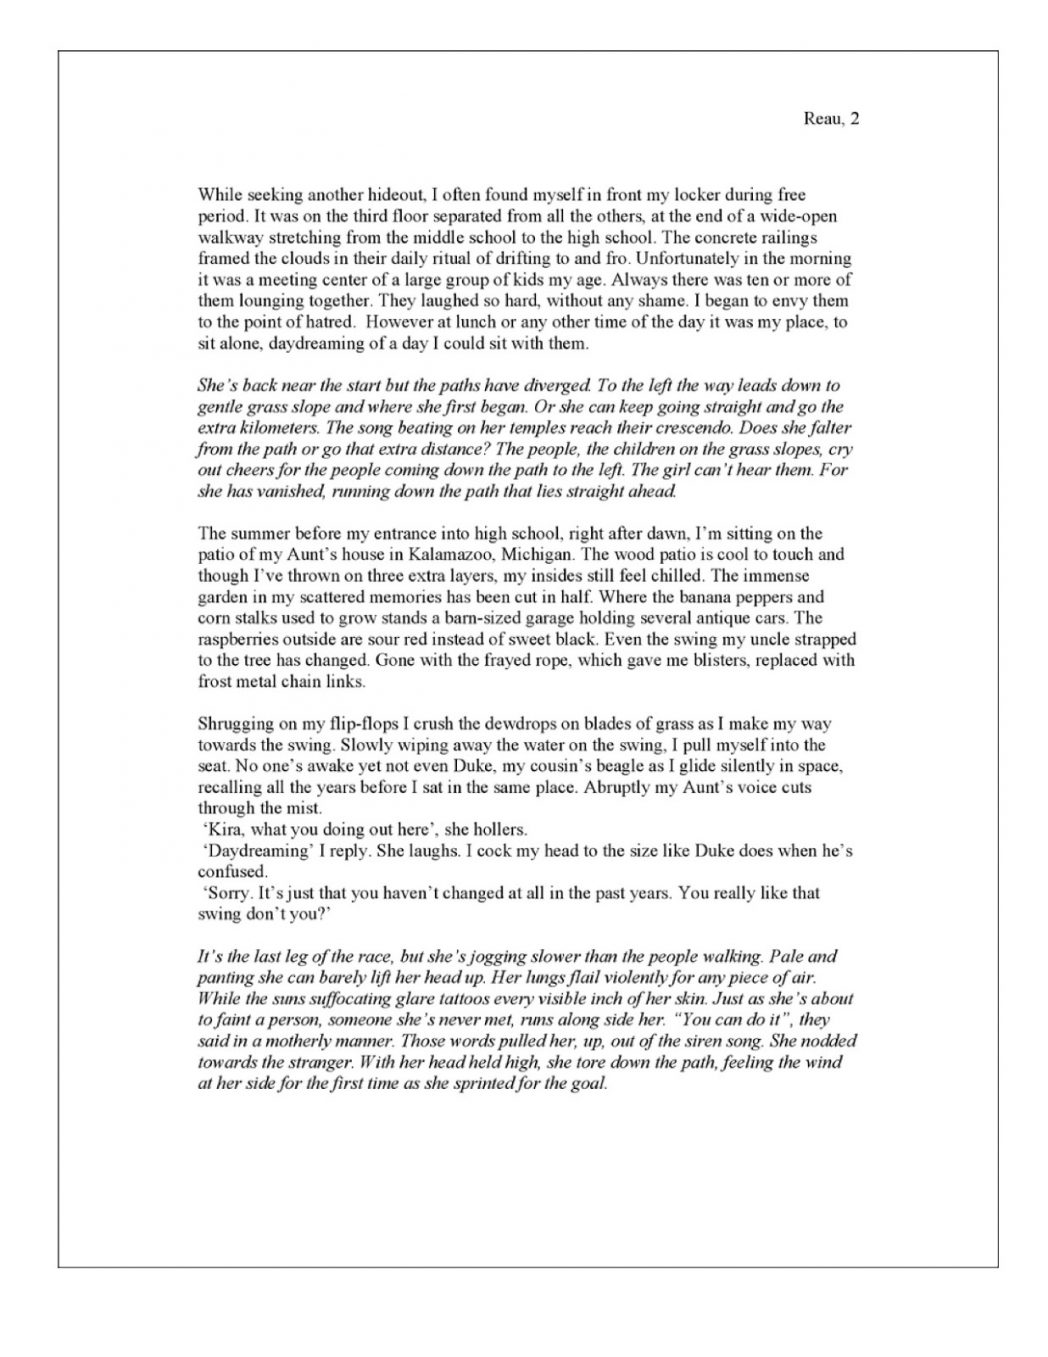 018 Narration Essay Define Narrative Definition Of The Life A Misant How To Write My Help Me 1048x1357 Fascinating Narrative/descriptive Writing Term Full